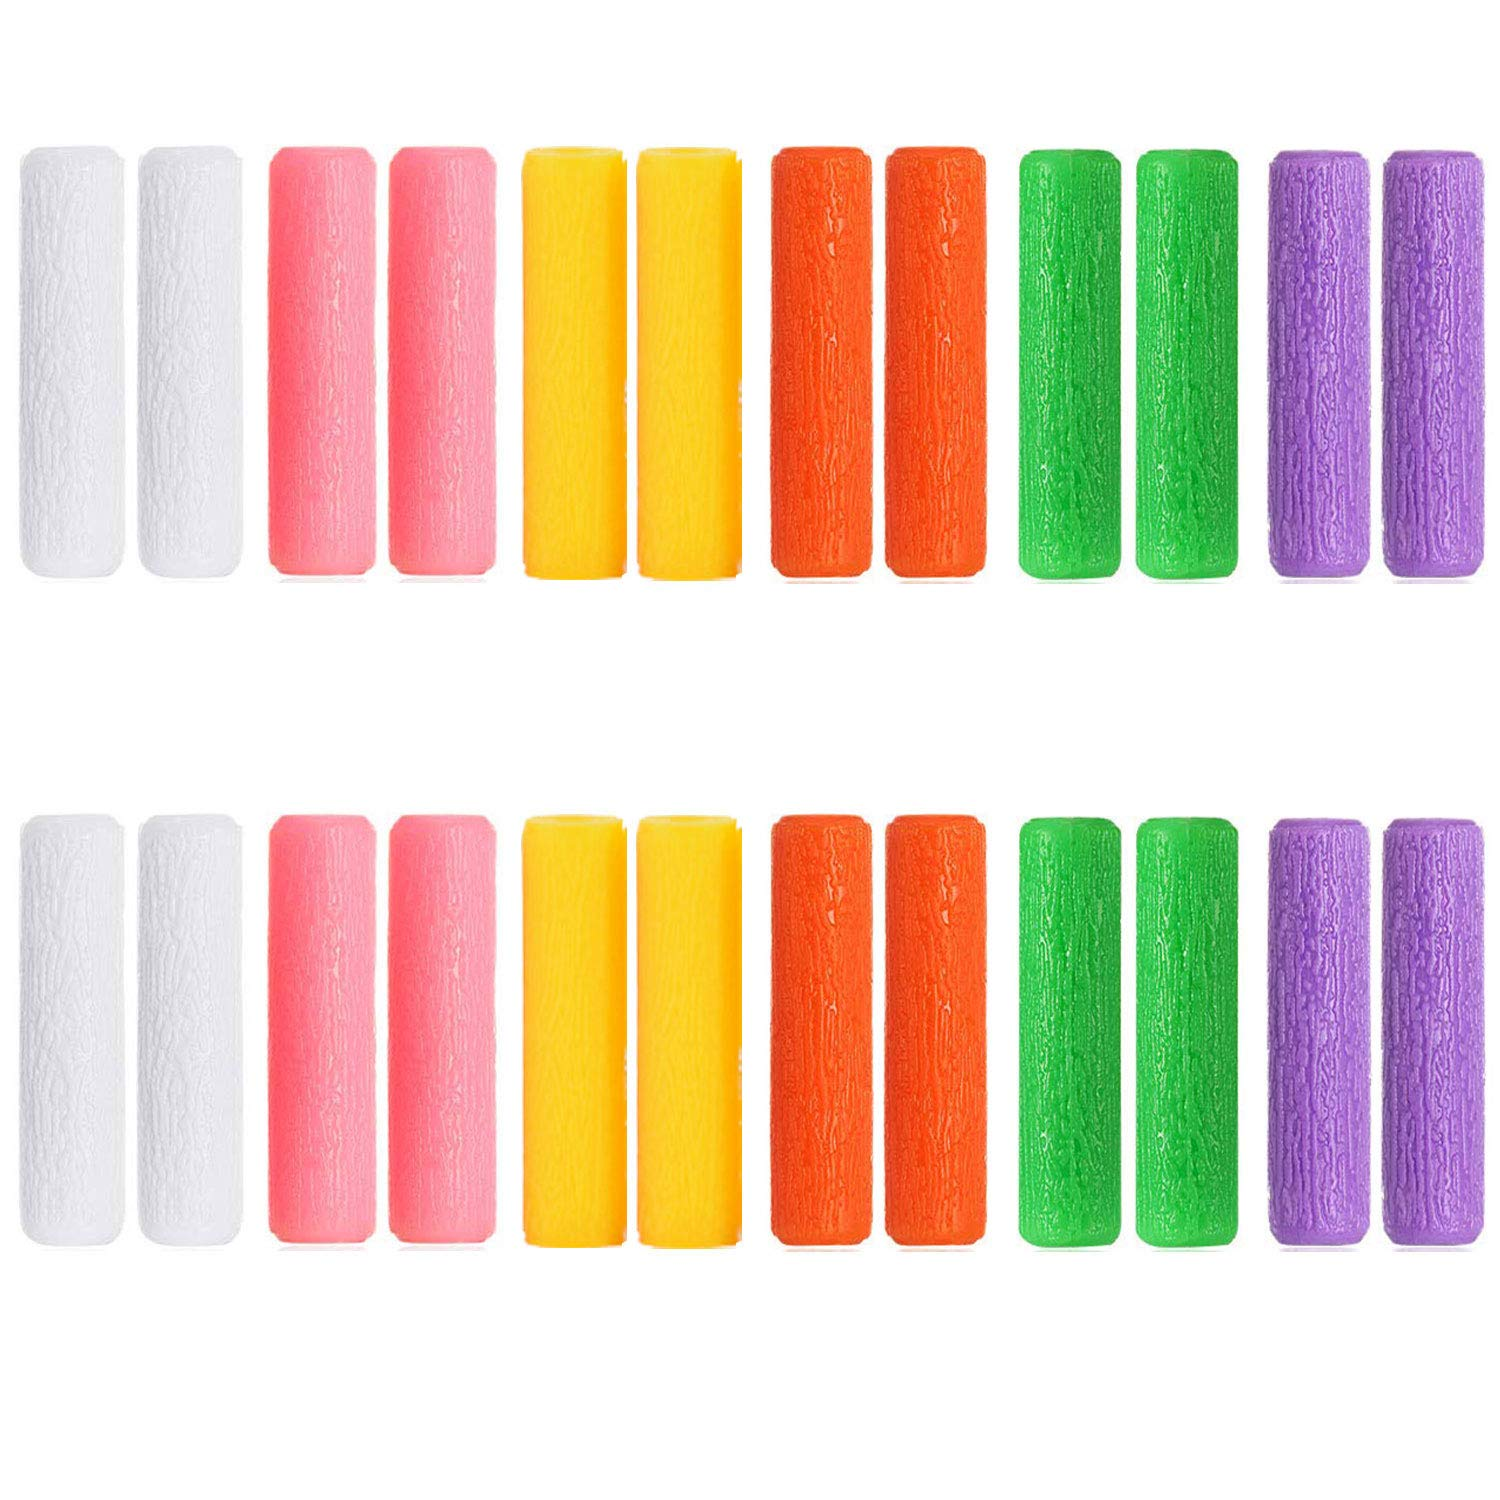 KISEER 24 Pcs Colourful Orthodontic Aligner Chewies for Aligner Chompers Aligner Trays Seaters, 6 Color